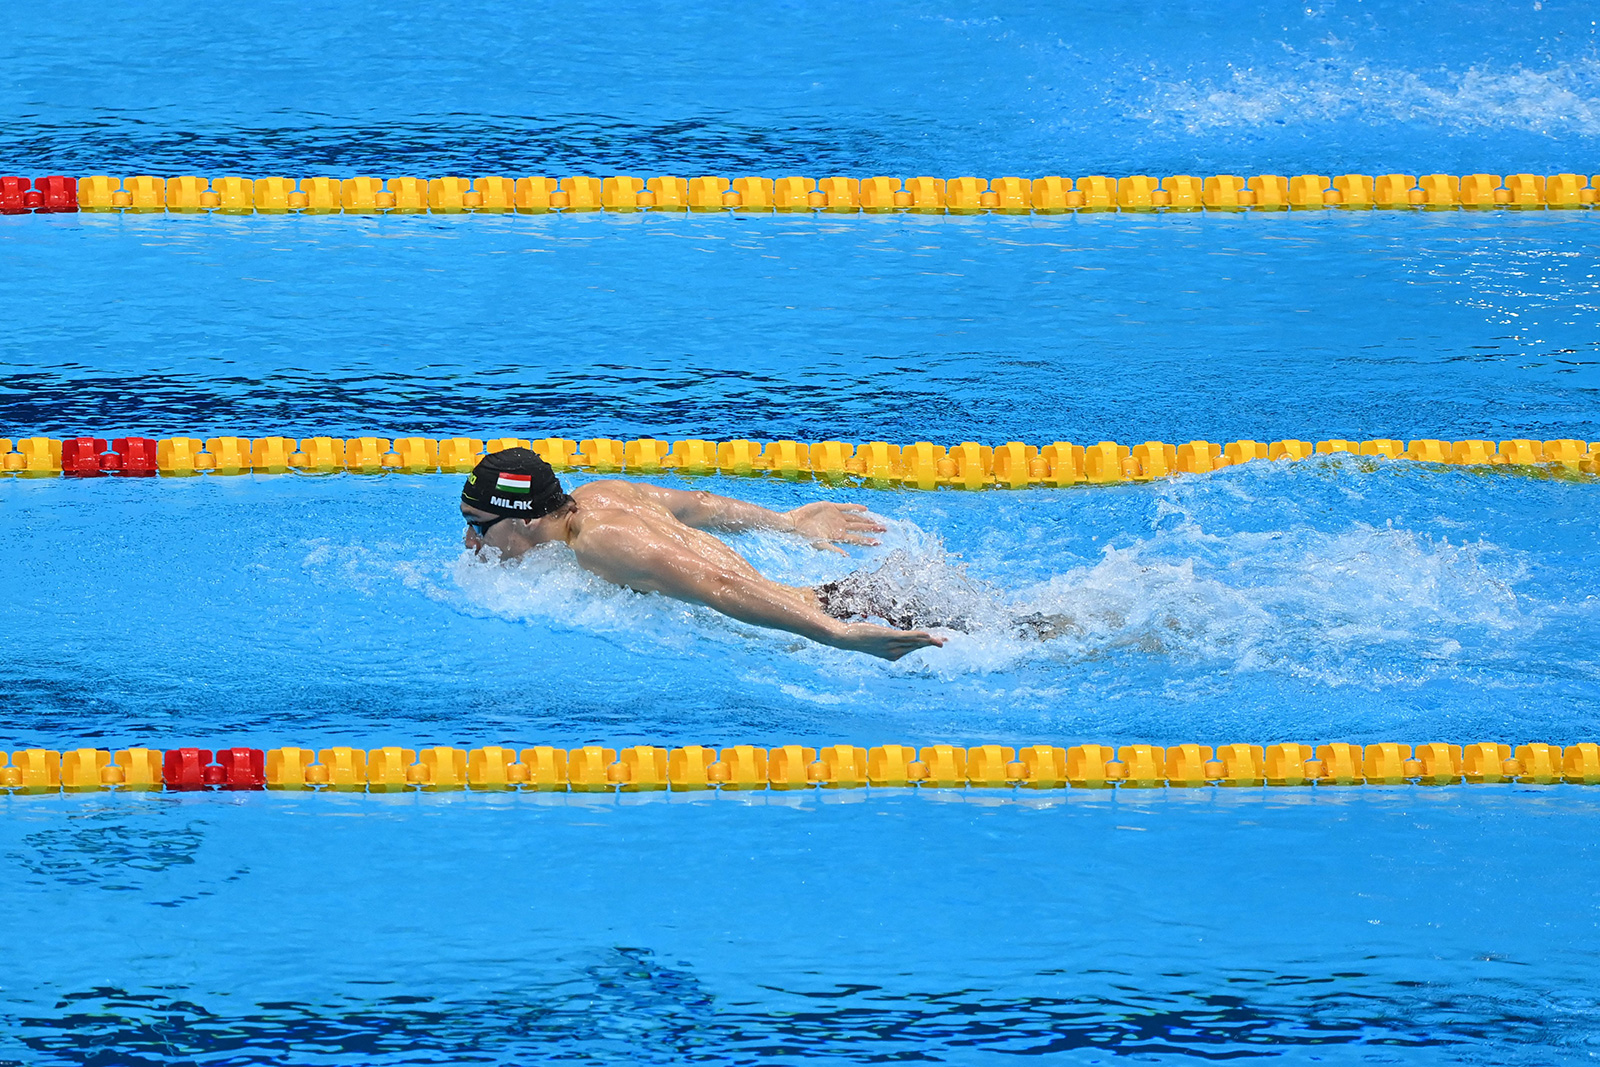 Hungary's Kristof Milak competes in the final of the 200m butterfly on July 28.